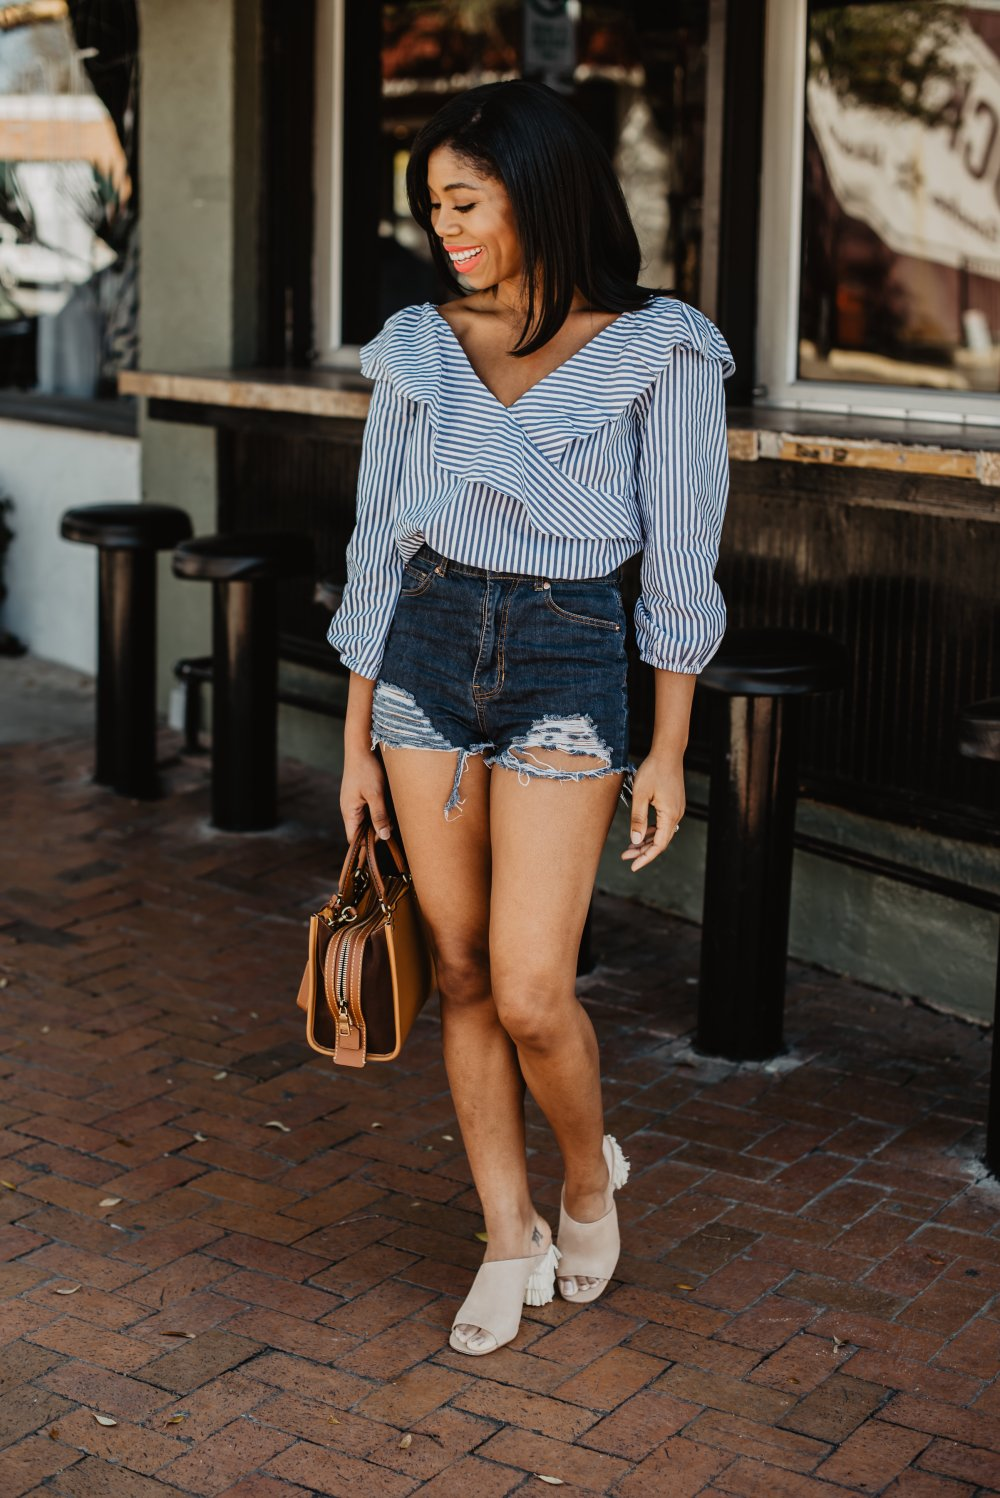 sanctuary clothing dallas fashion blogger denim shorts plv shoes stephanie taylor jackson